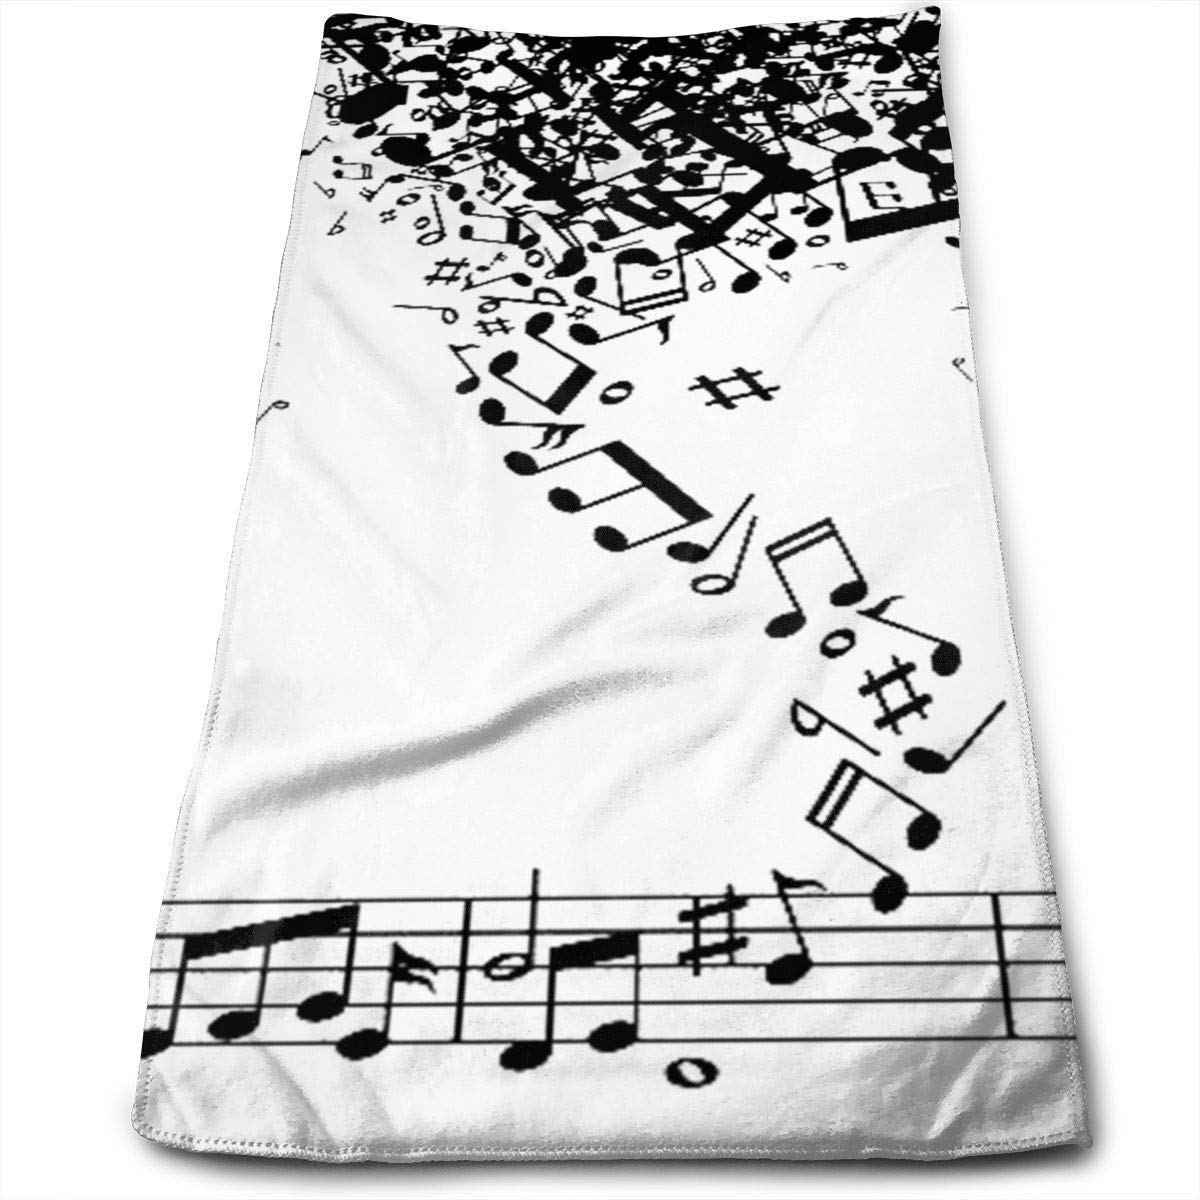 2019 New Bath Towels Black Music Notes Storm Face Towels Highly Absorbent Washcloths Multipurpose Towels for Hand Face Gym and Spa 12' X 27.5'